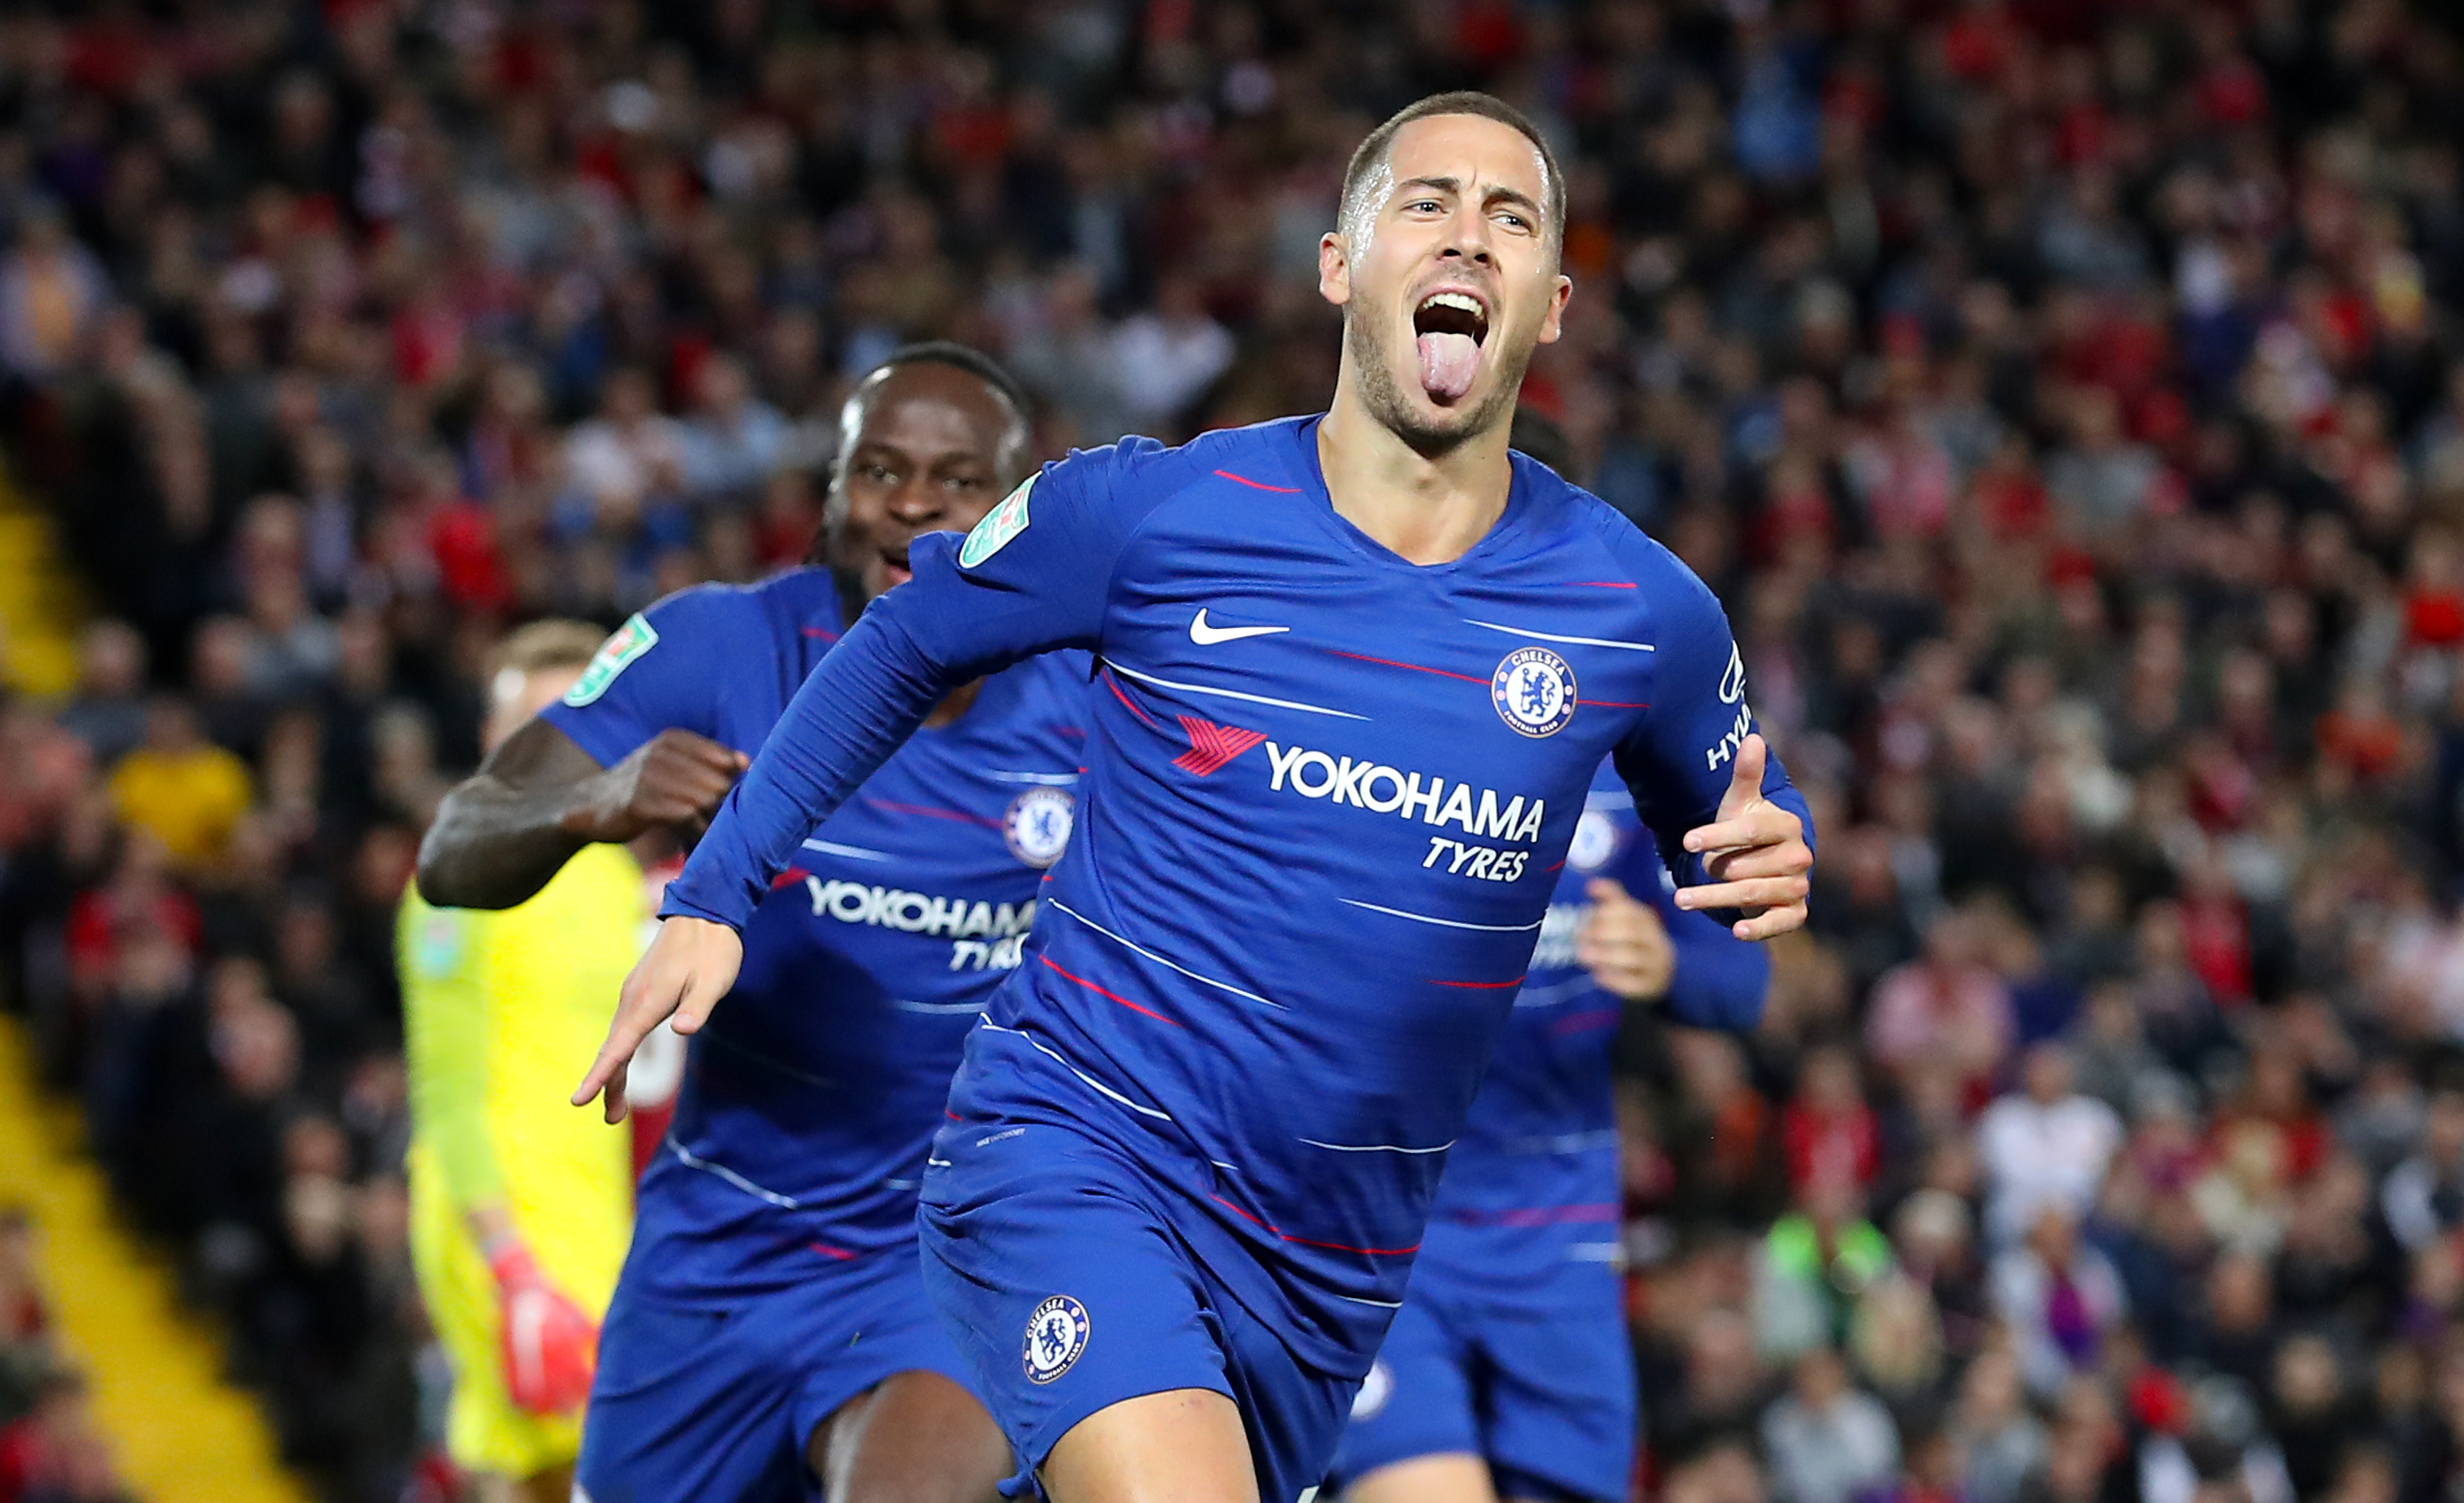 Why did Jorginho choose Chelsea over 'this' Premier League club?